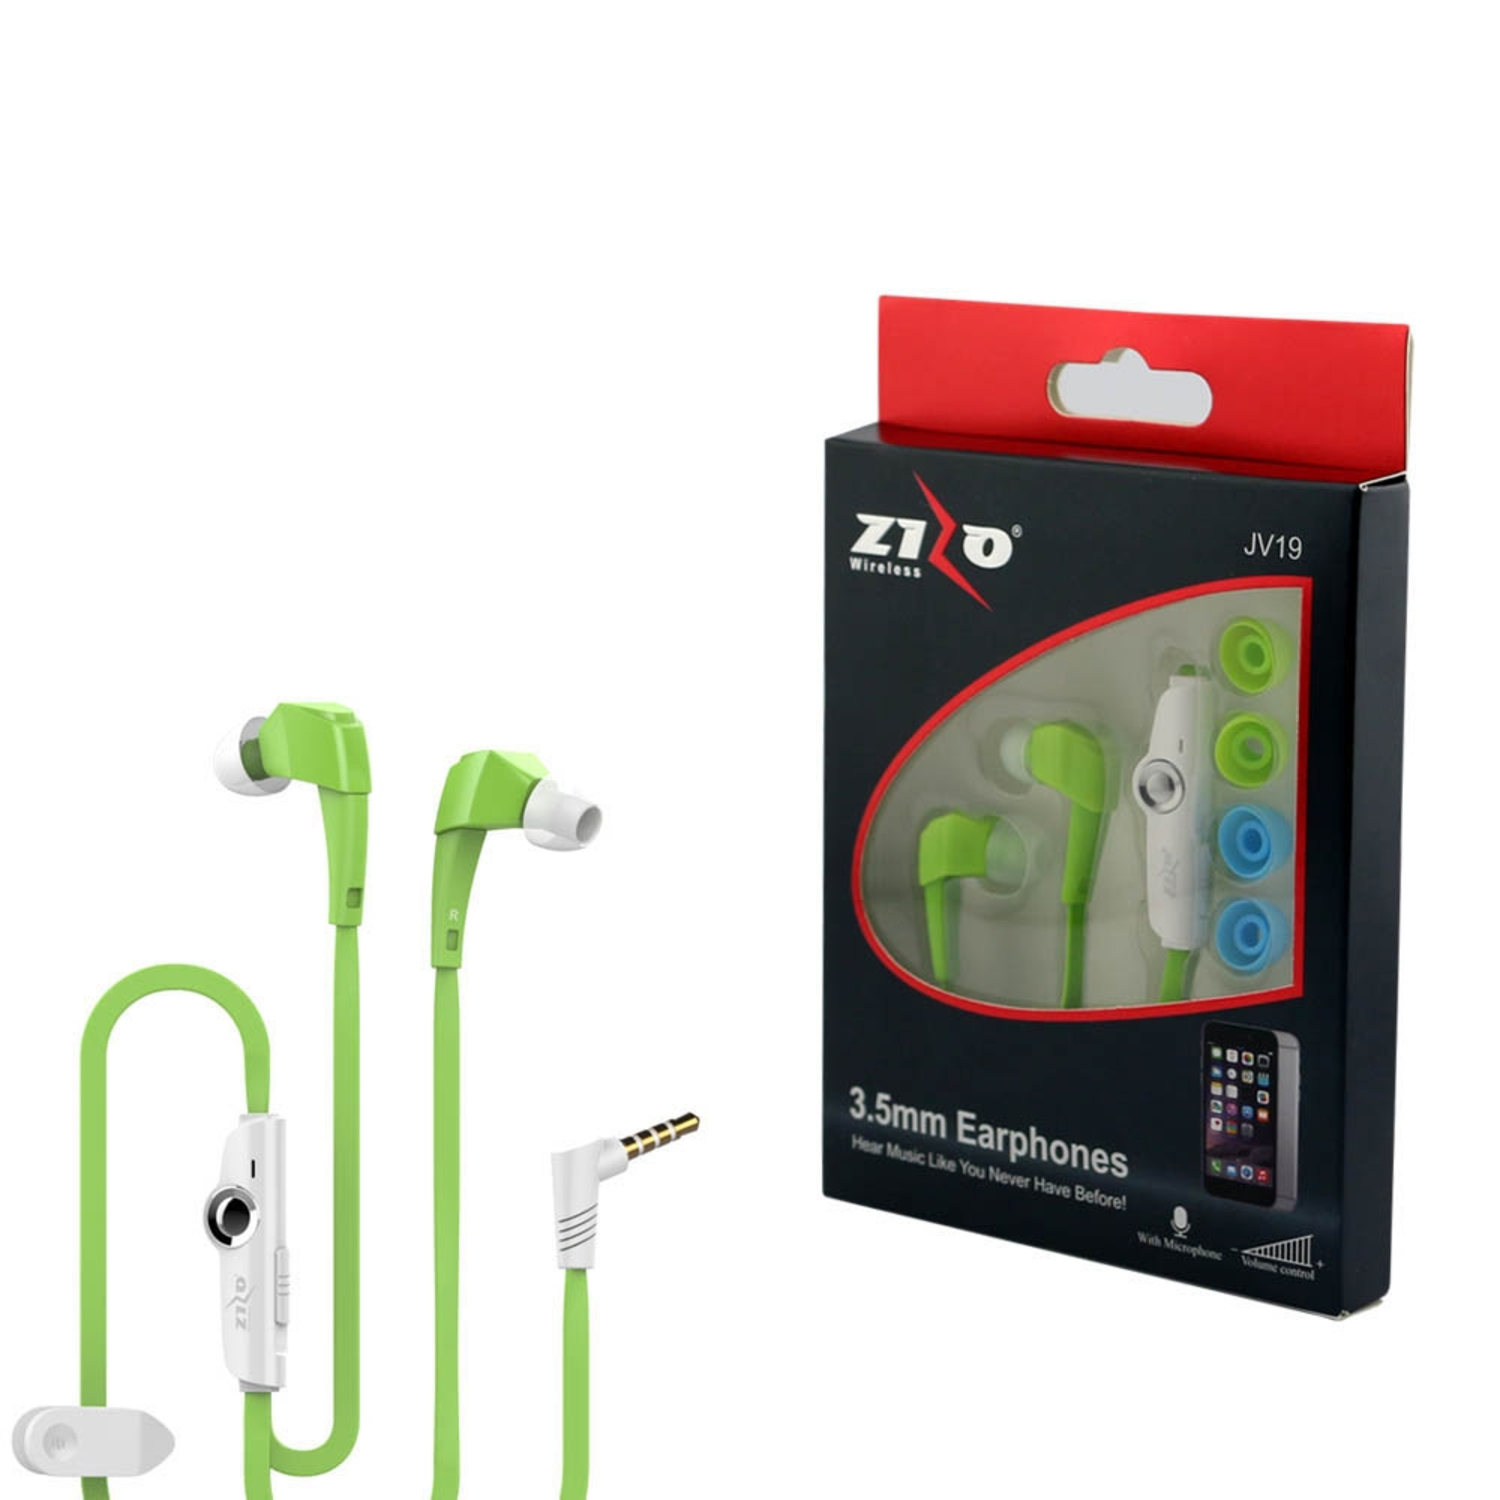 Insten 3.5mm JV19 Stereo Hands-free Headphone Earbuds w\/ Microphone For Android IOS Smartphone - Neon Green